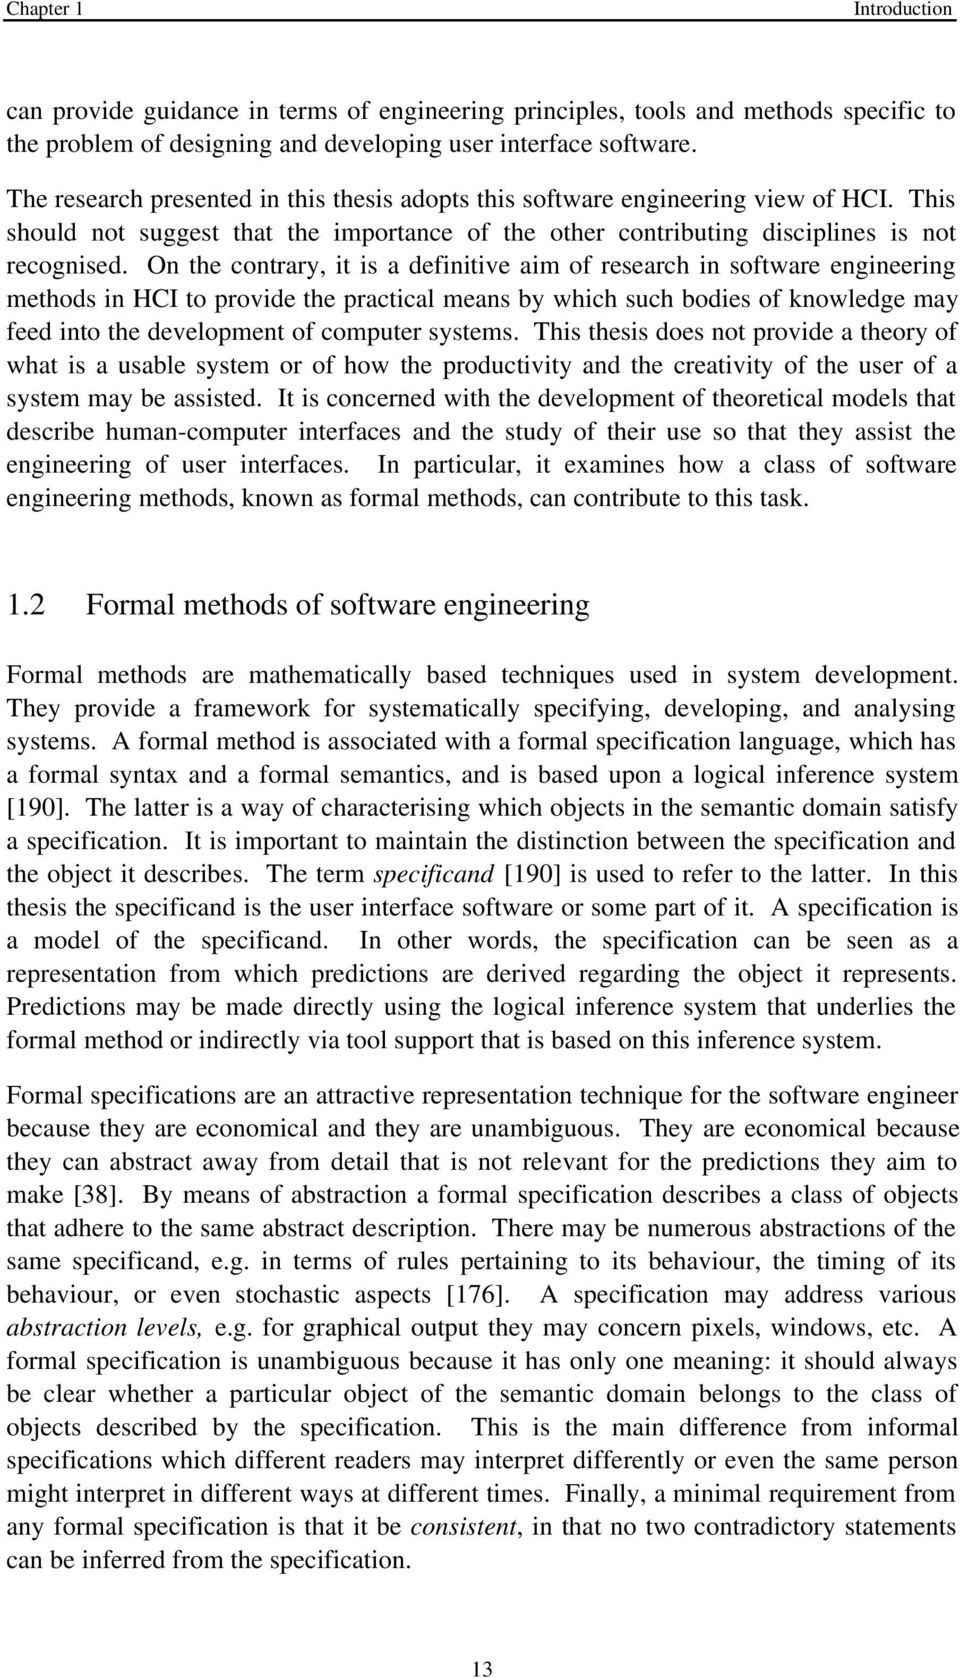 On the contrary, it is a definitive aim of research in software engineering methods in HCI to provide the practical means by which such bodies of knowledge may feed into the development of computer